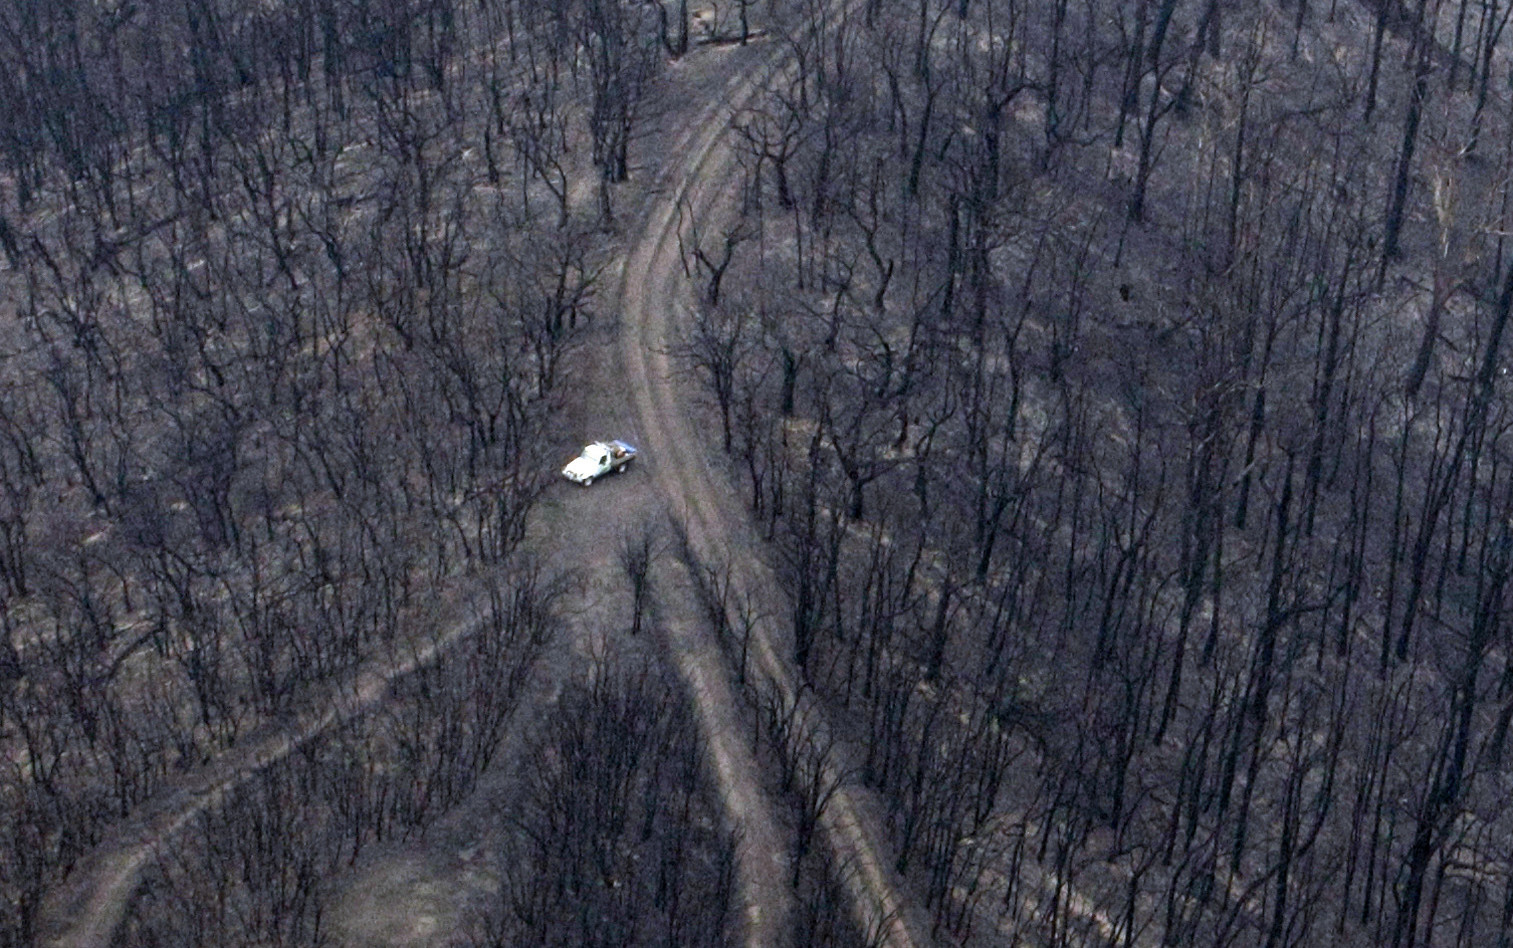 A vehicle is seen near the remains of a forest destroyed by bushfire.